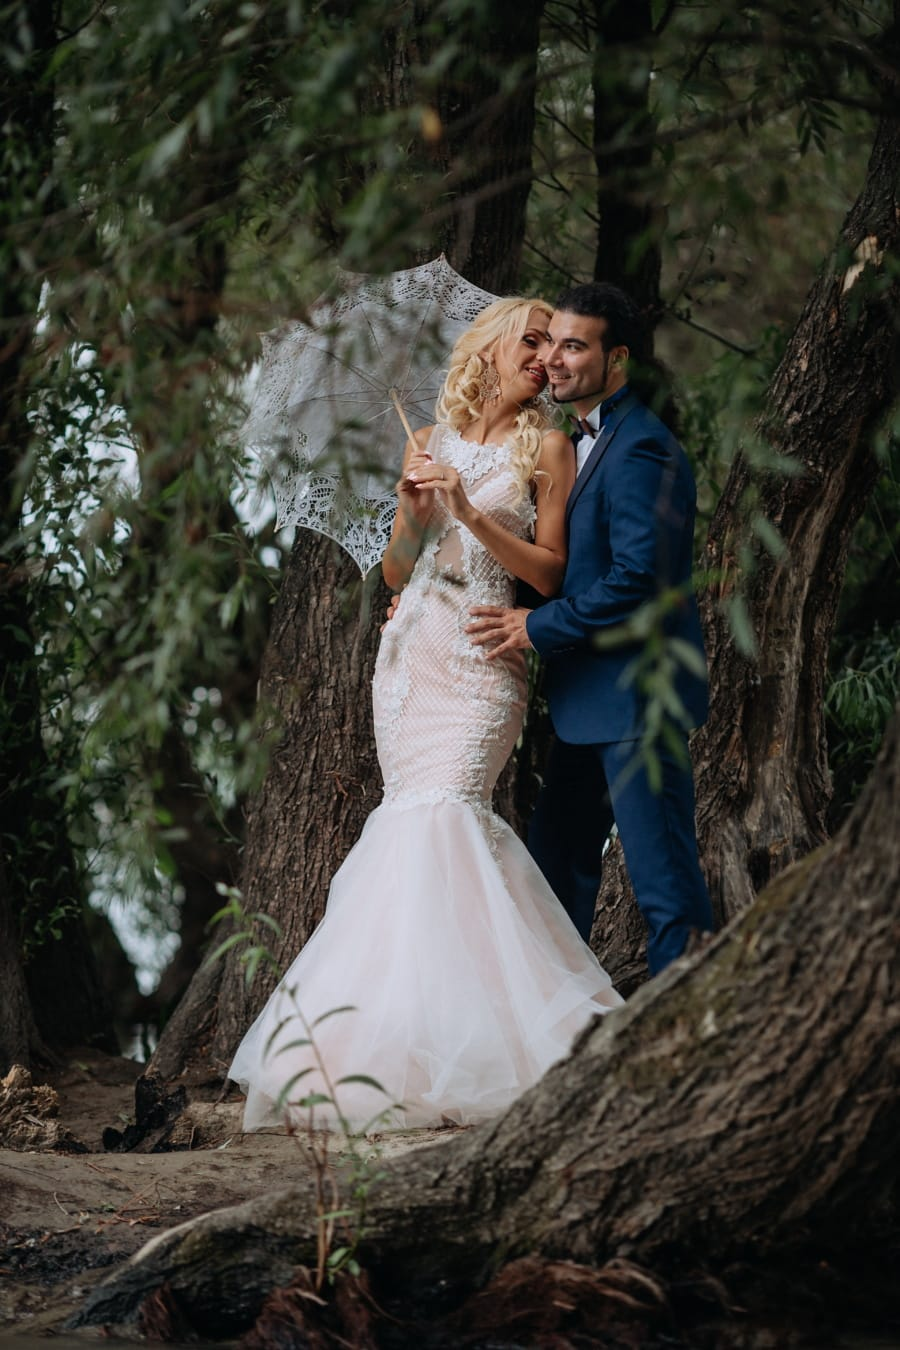 bride, groom, just married, fashion, glamour, forest, wedding, marriage, engagement, love